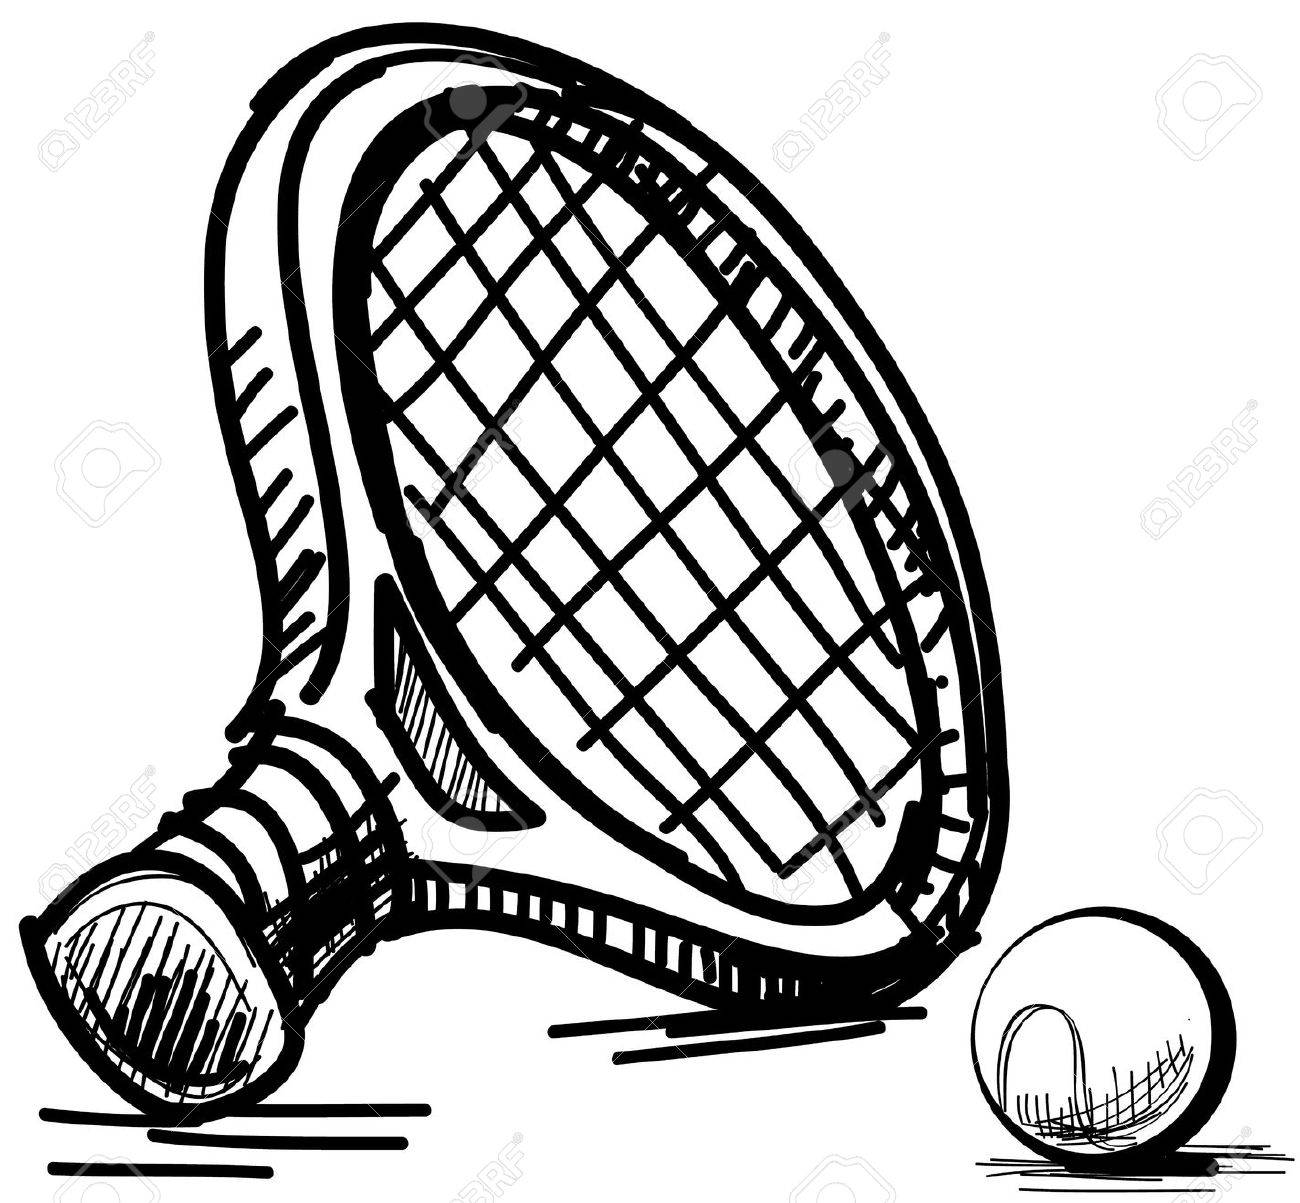 Tennis equipment Stock Vector - 18966903